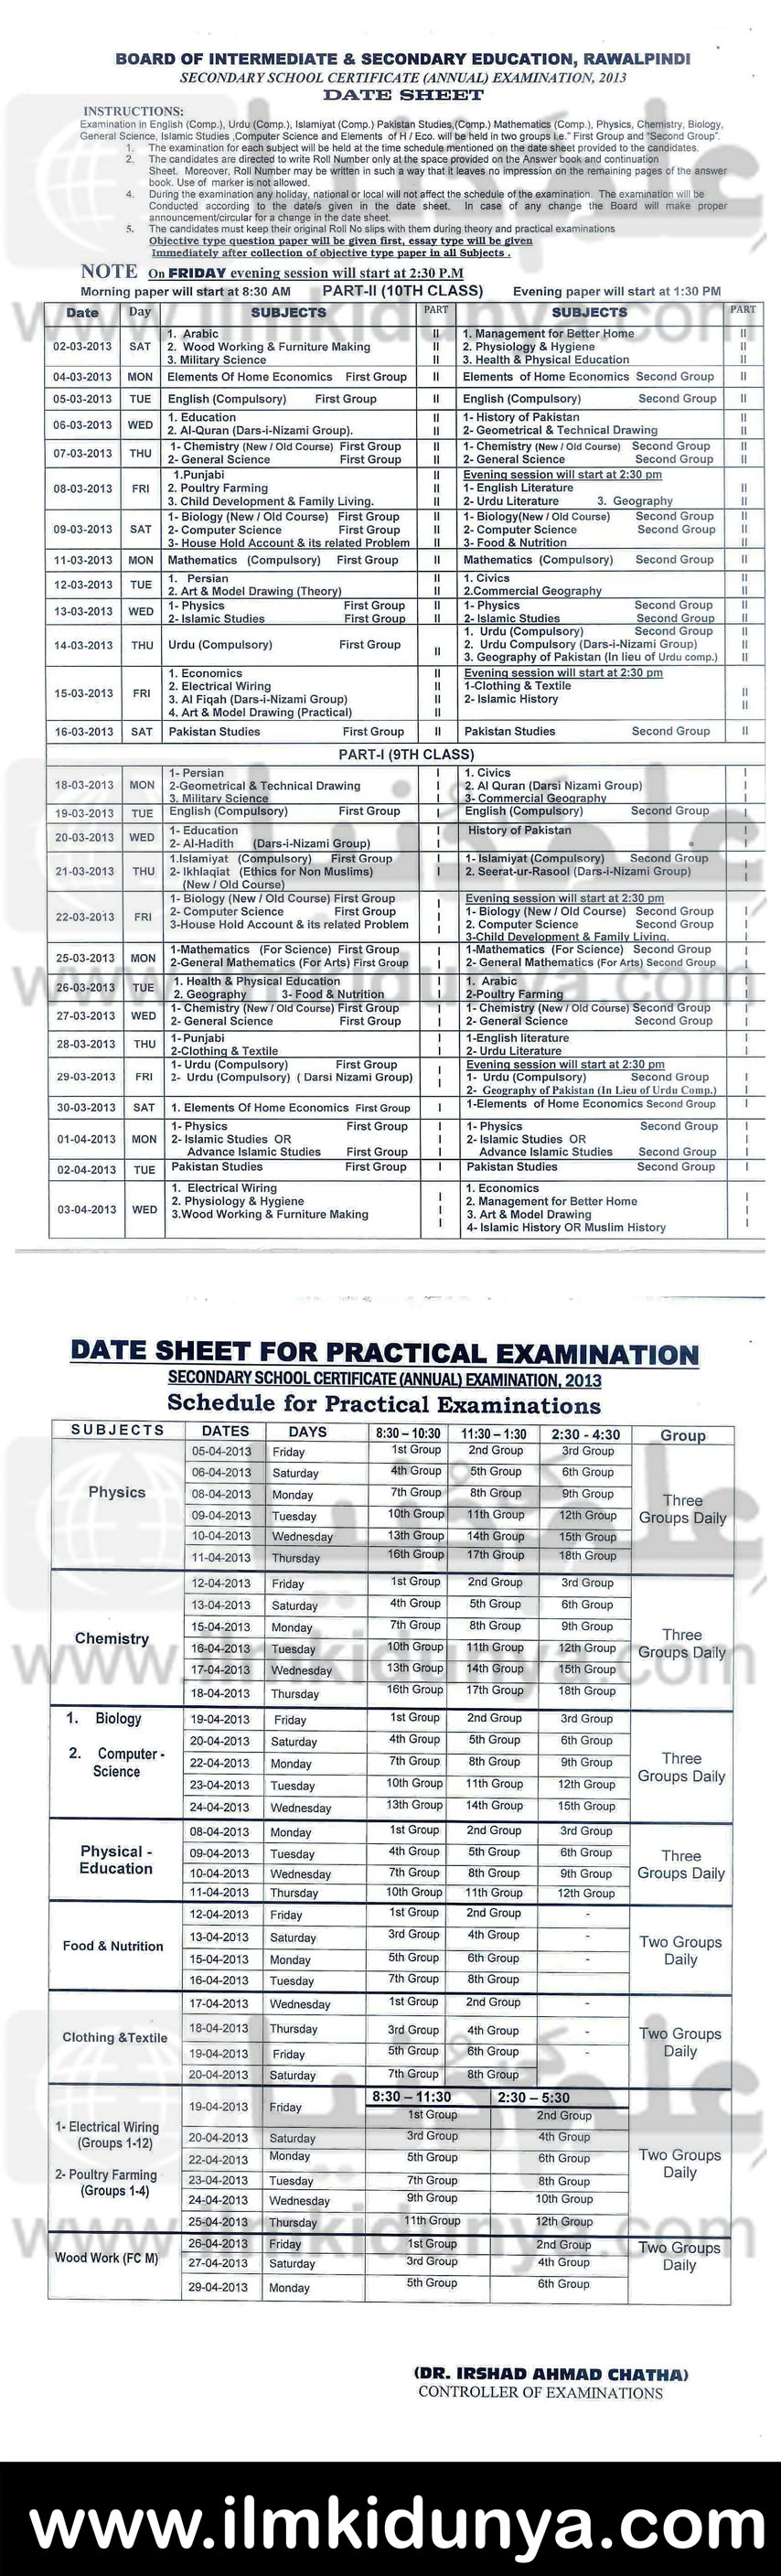 Bise rawalpindi board matric part 1 date sheet 2018 for 9th class time table